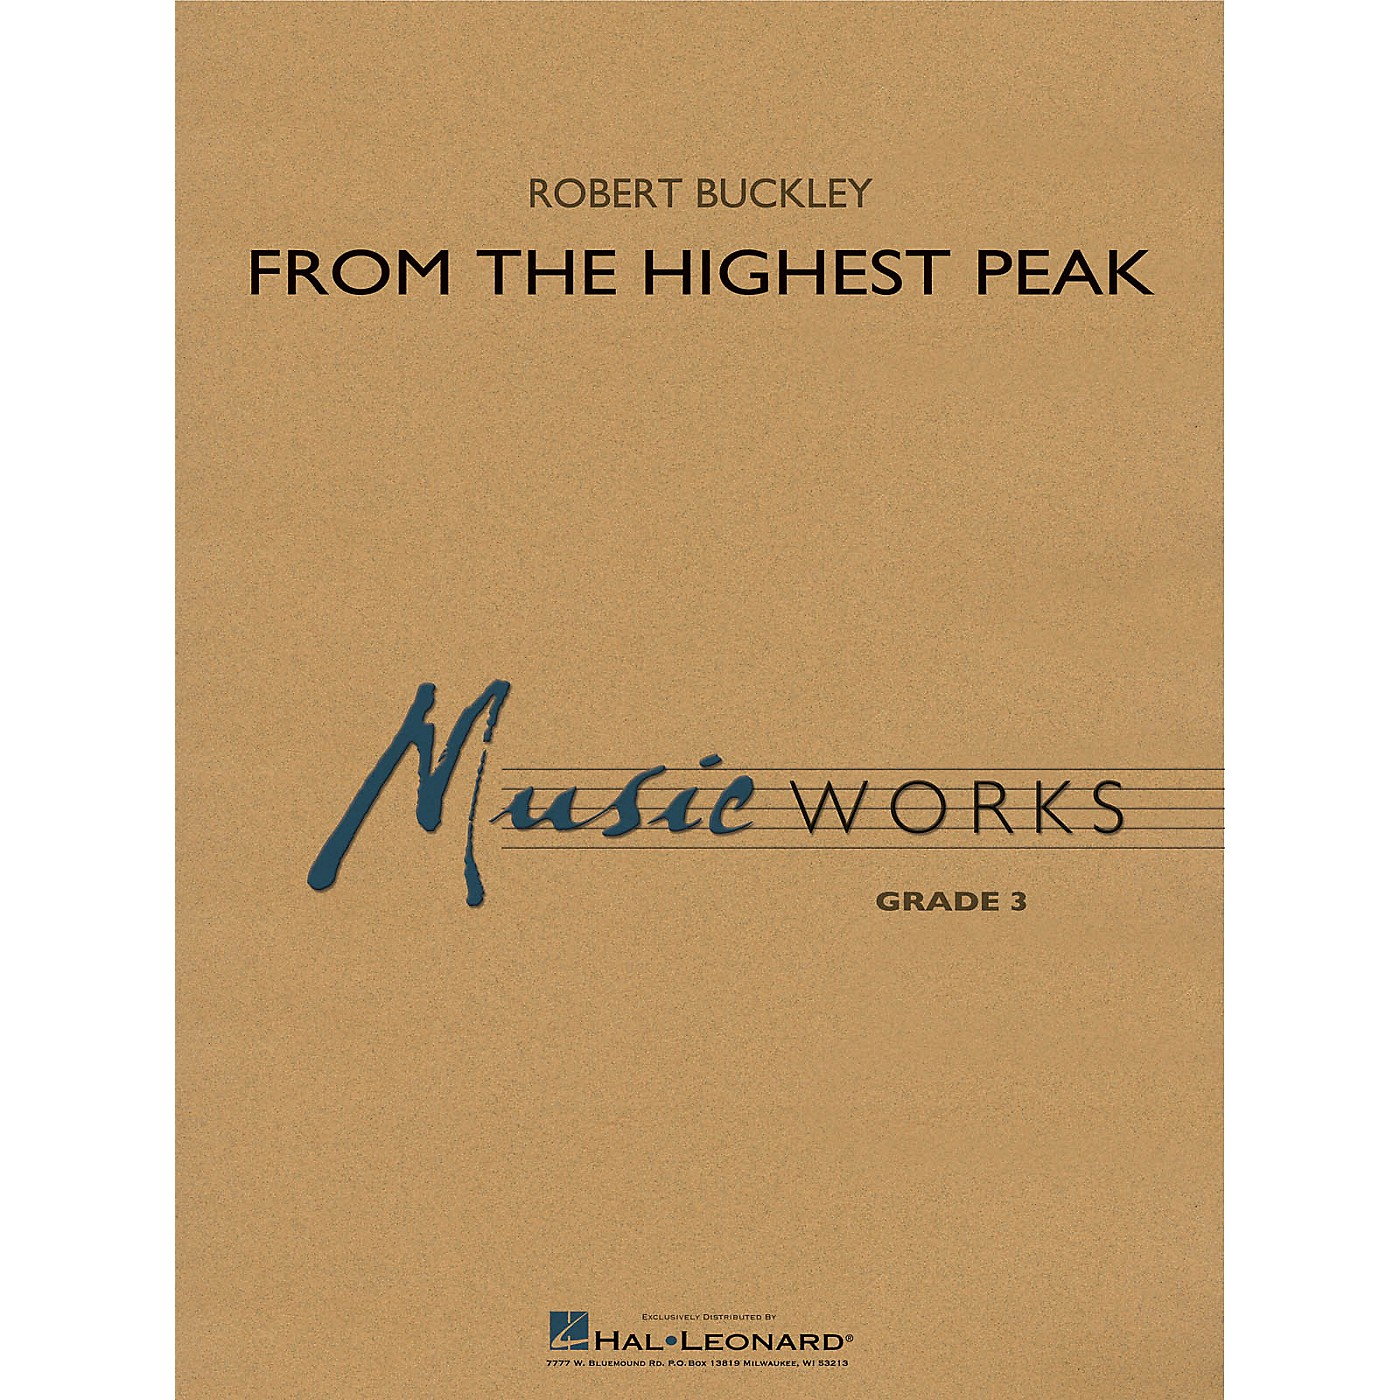 Hal Leonard From the Highest Peak Concert Band Level 3 Composed by Robert Buckley thumbnail